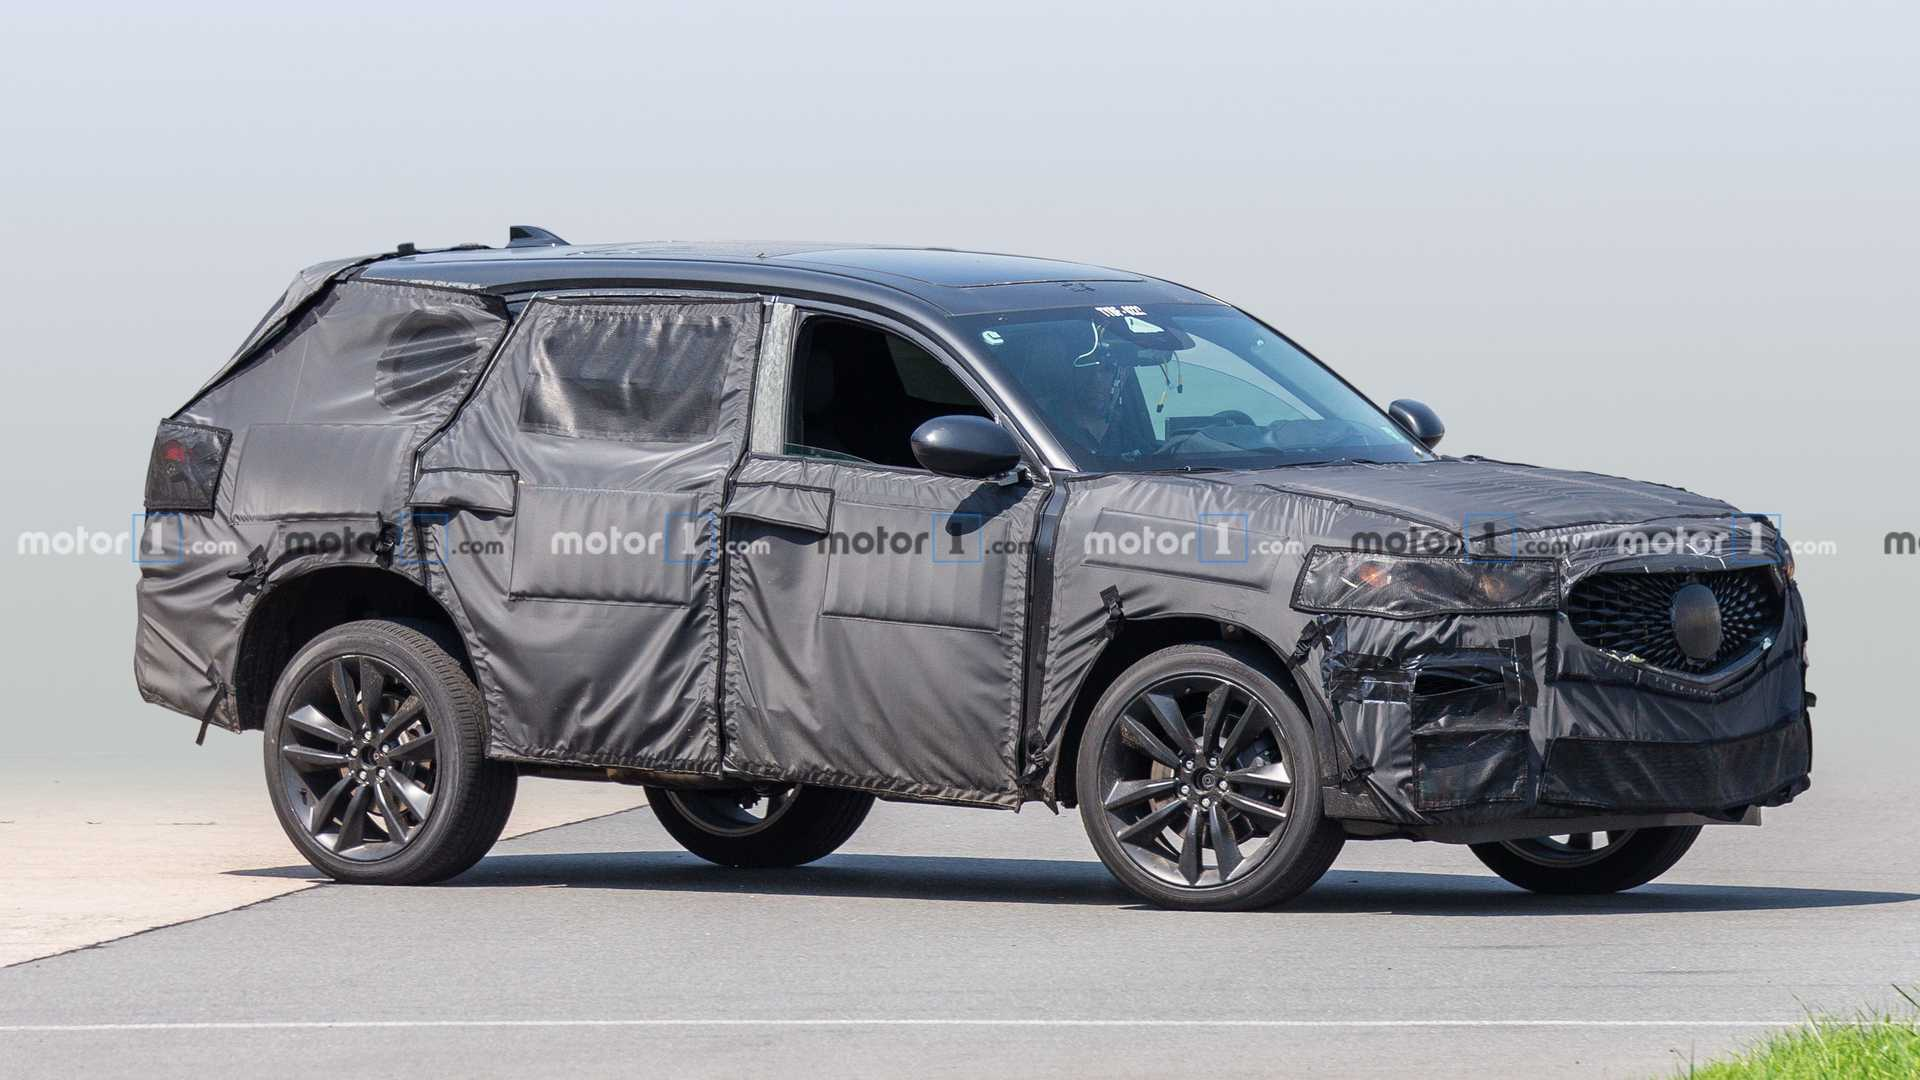 46 New 2020 Acura Mdx Spy Photos Rumors for 2020 Acura Mdx Spy Photos